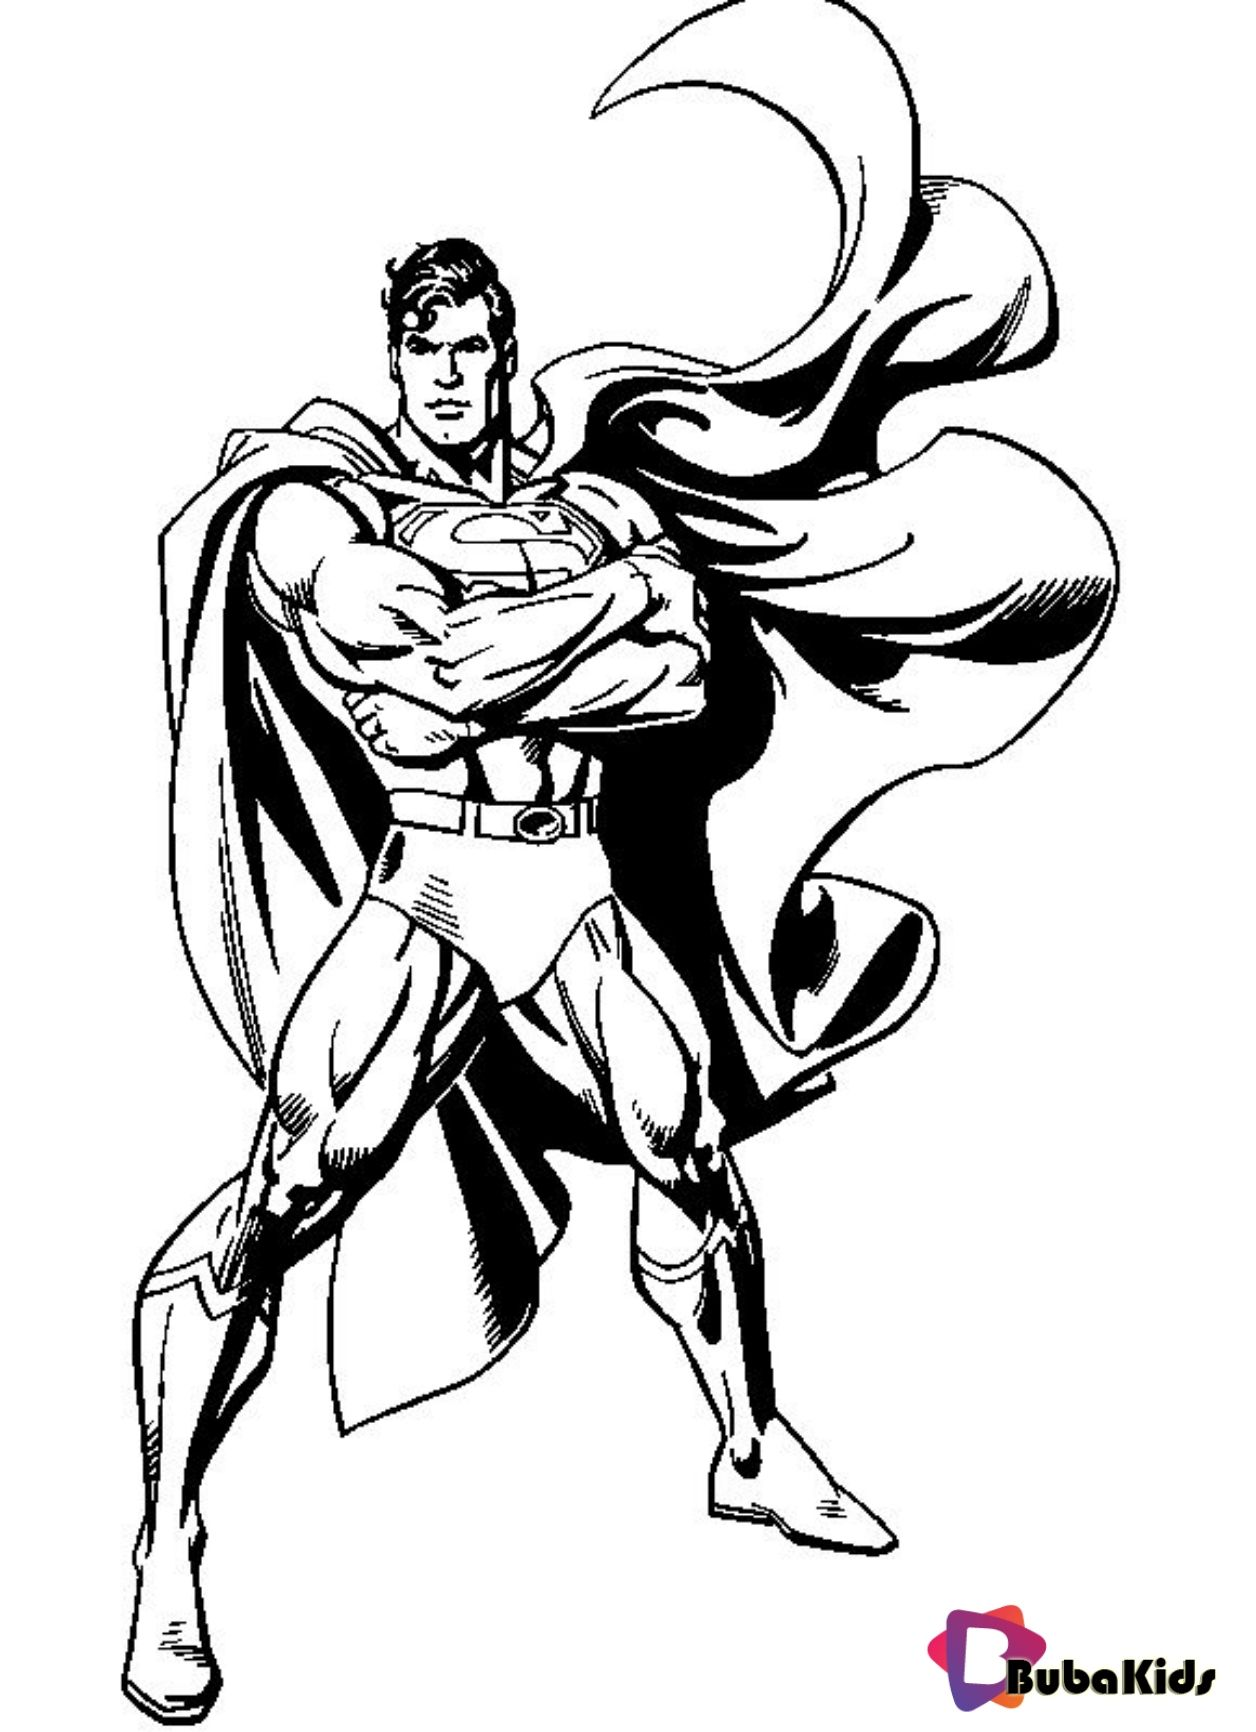 Superman Coloring Page Cartoon Characters Coloring Pages On Bubakids Com Bubakids Com Superman Coloring Pages Superhero Coloring Pages Cartoon Coloring Pages